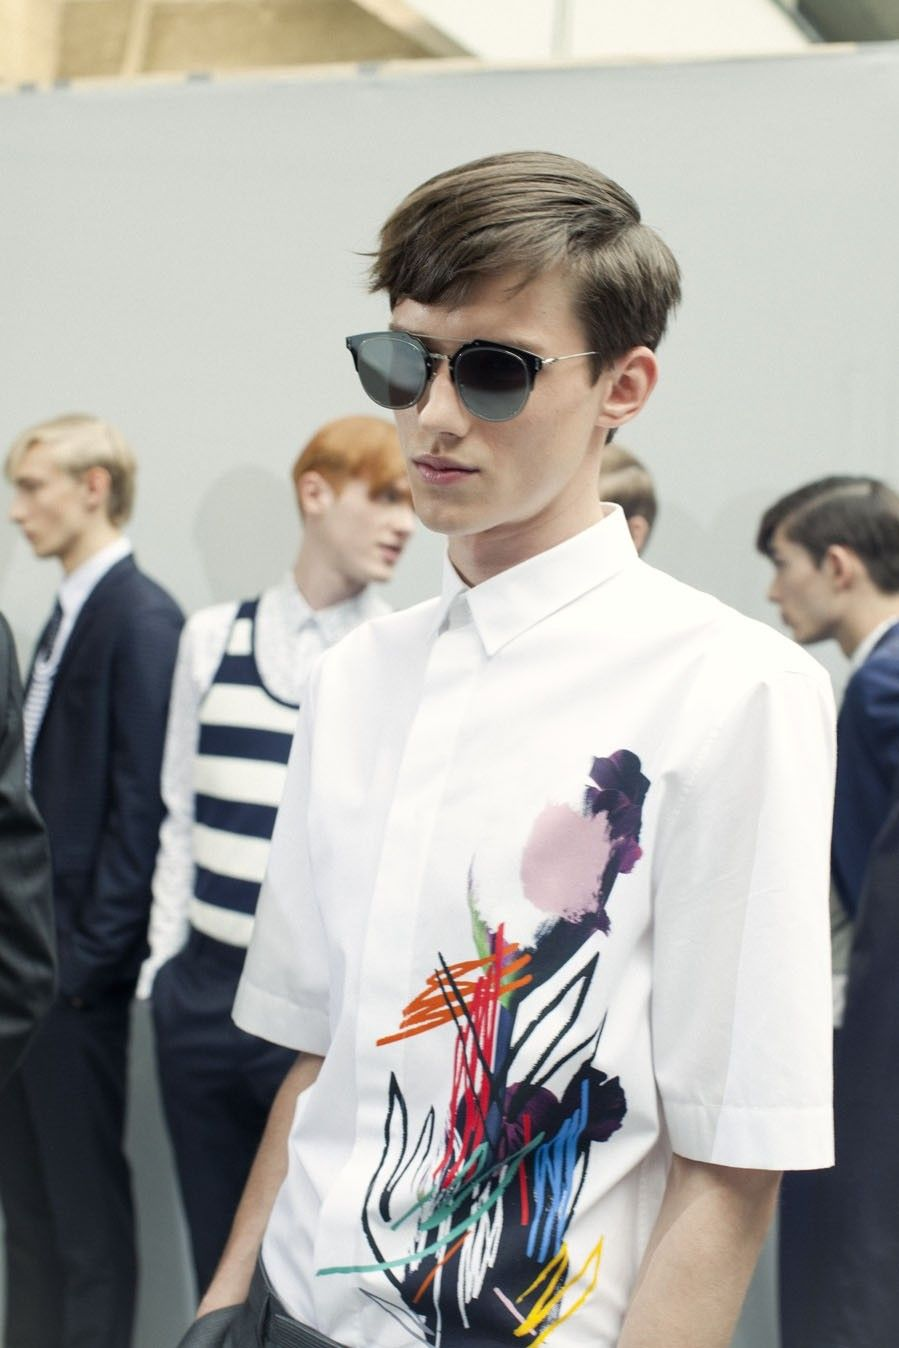 Dior Homme SS15   Fashion Design   Dior homme, Mens fashion, Dior 47df5d688fc